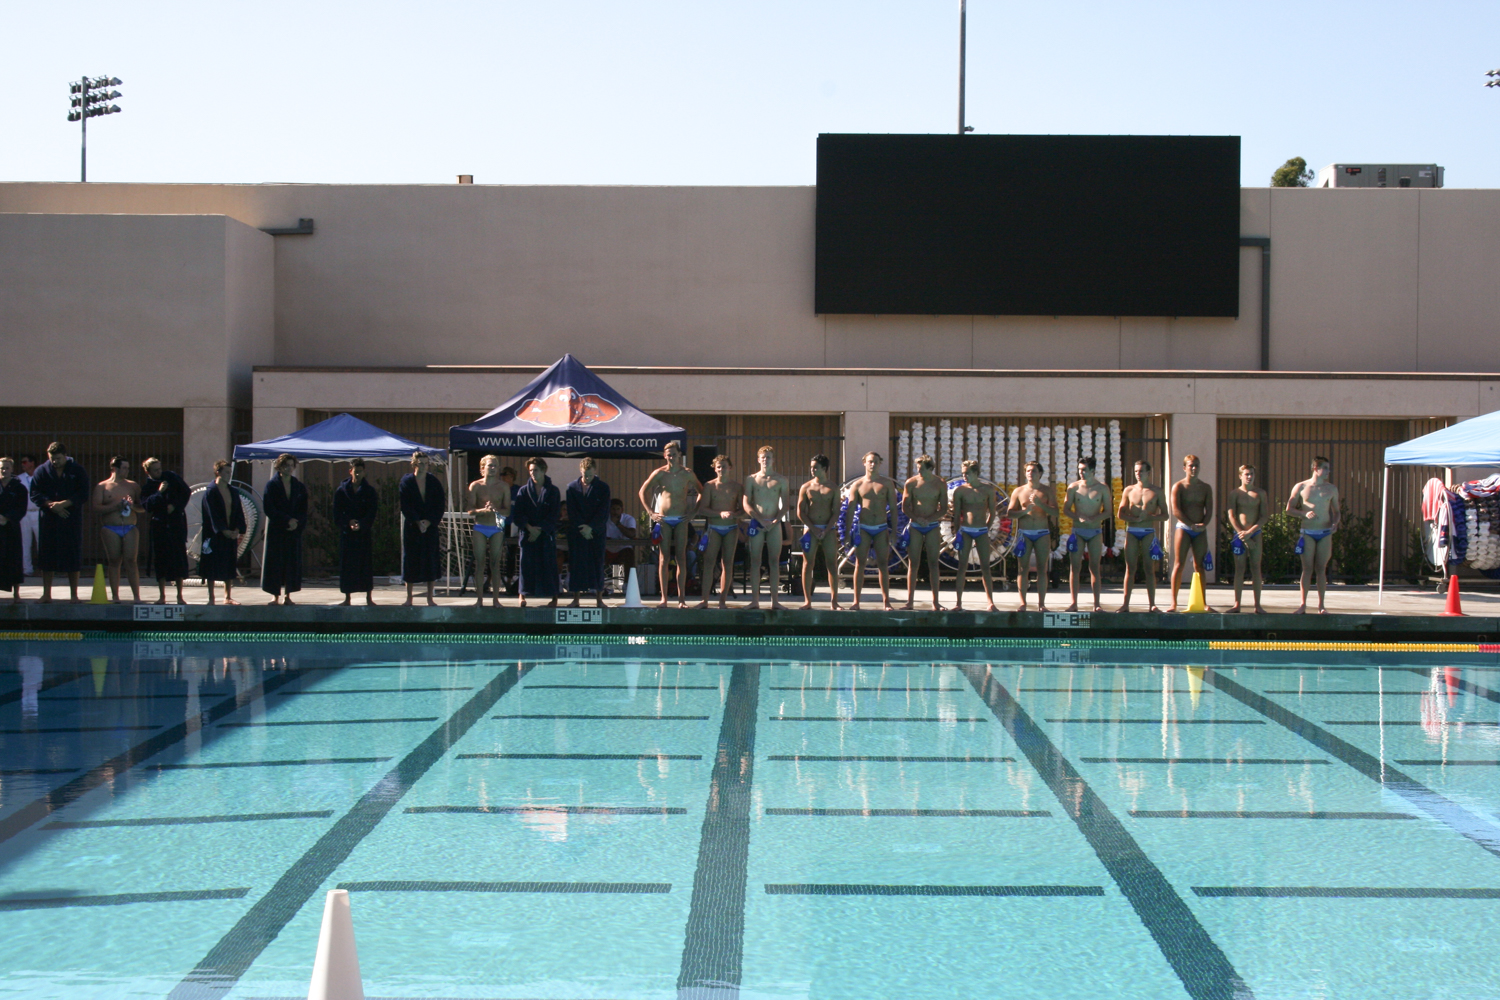 Against Dana Hills HS, the two teams line up to announce the players.